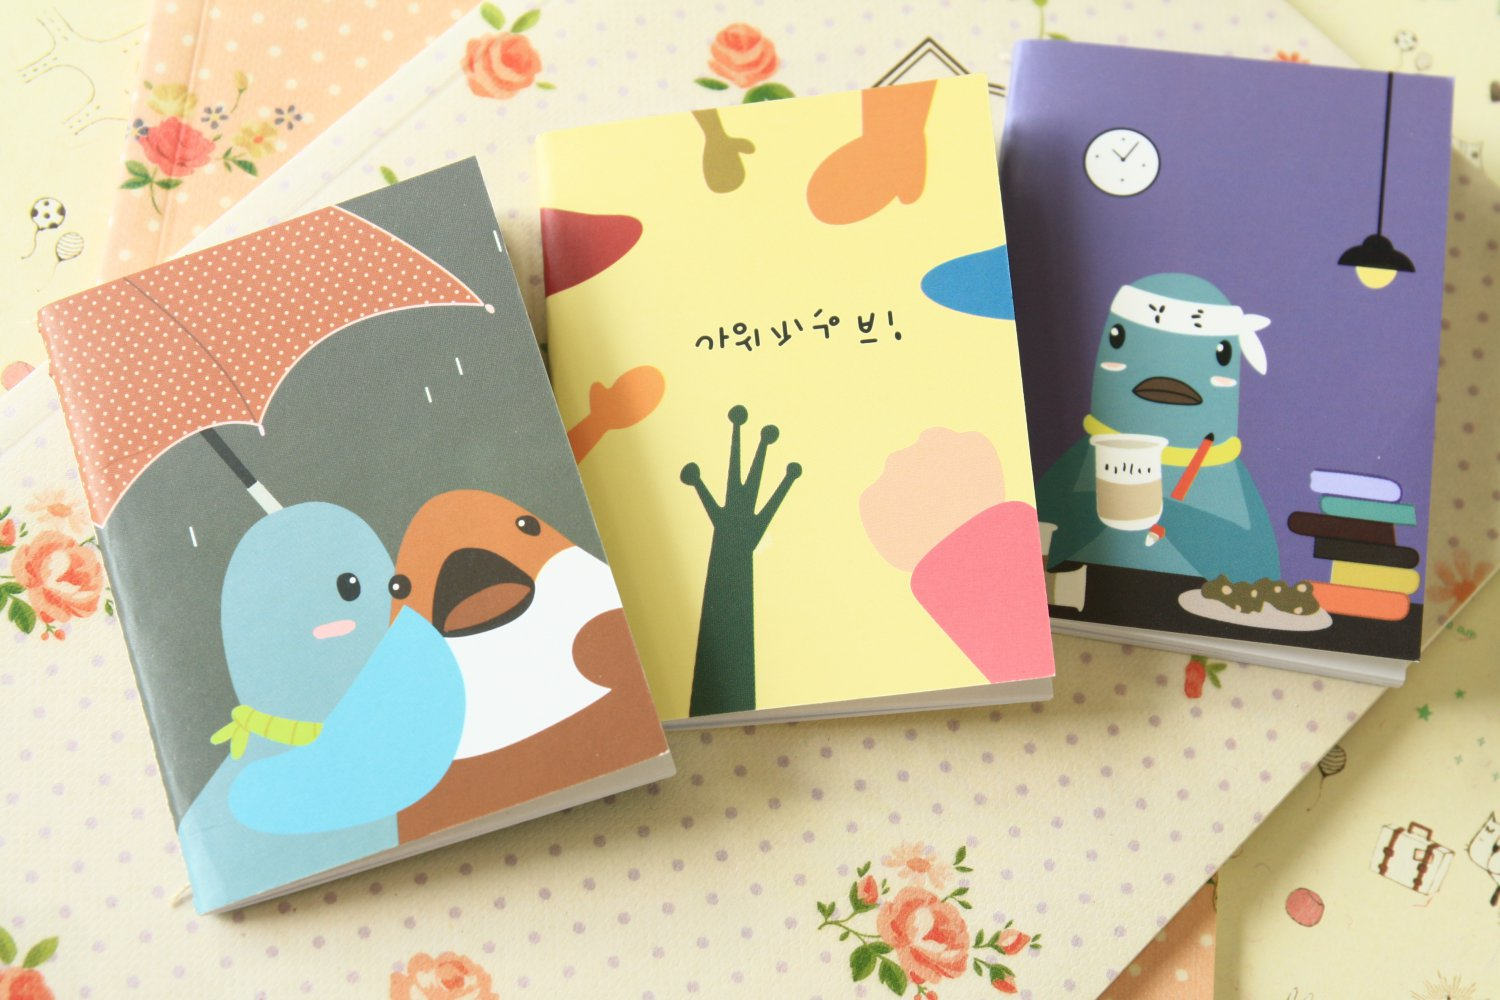 Set 02 Isme Mini cartoon notebooks